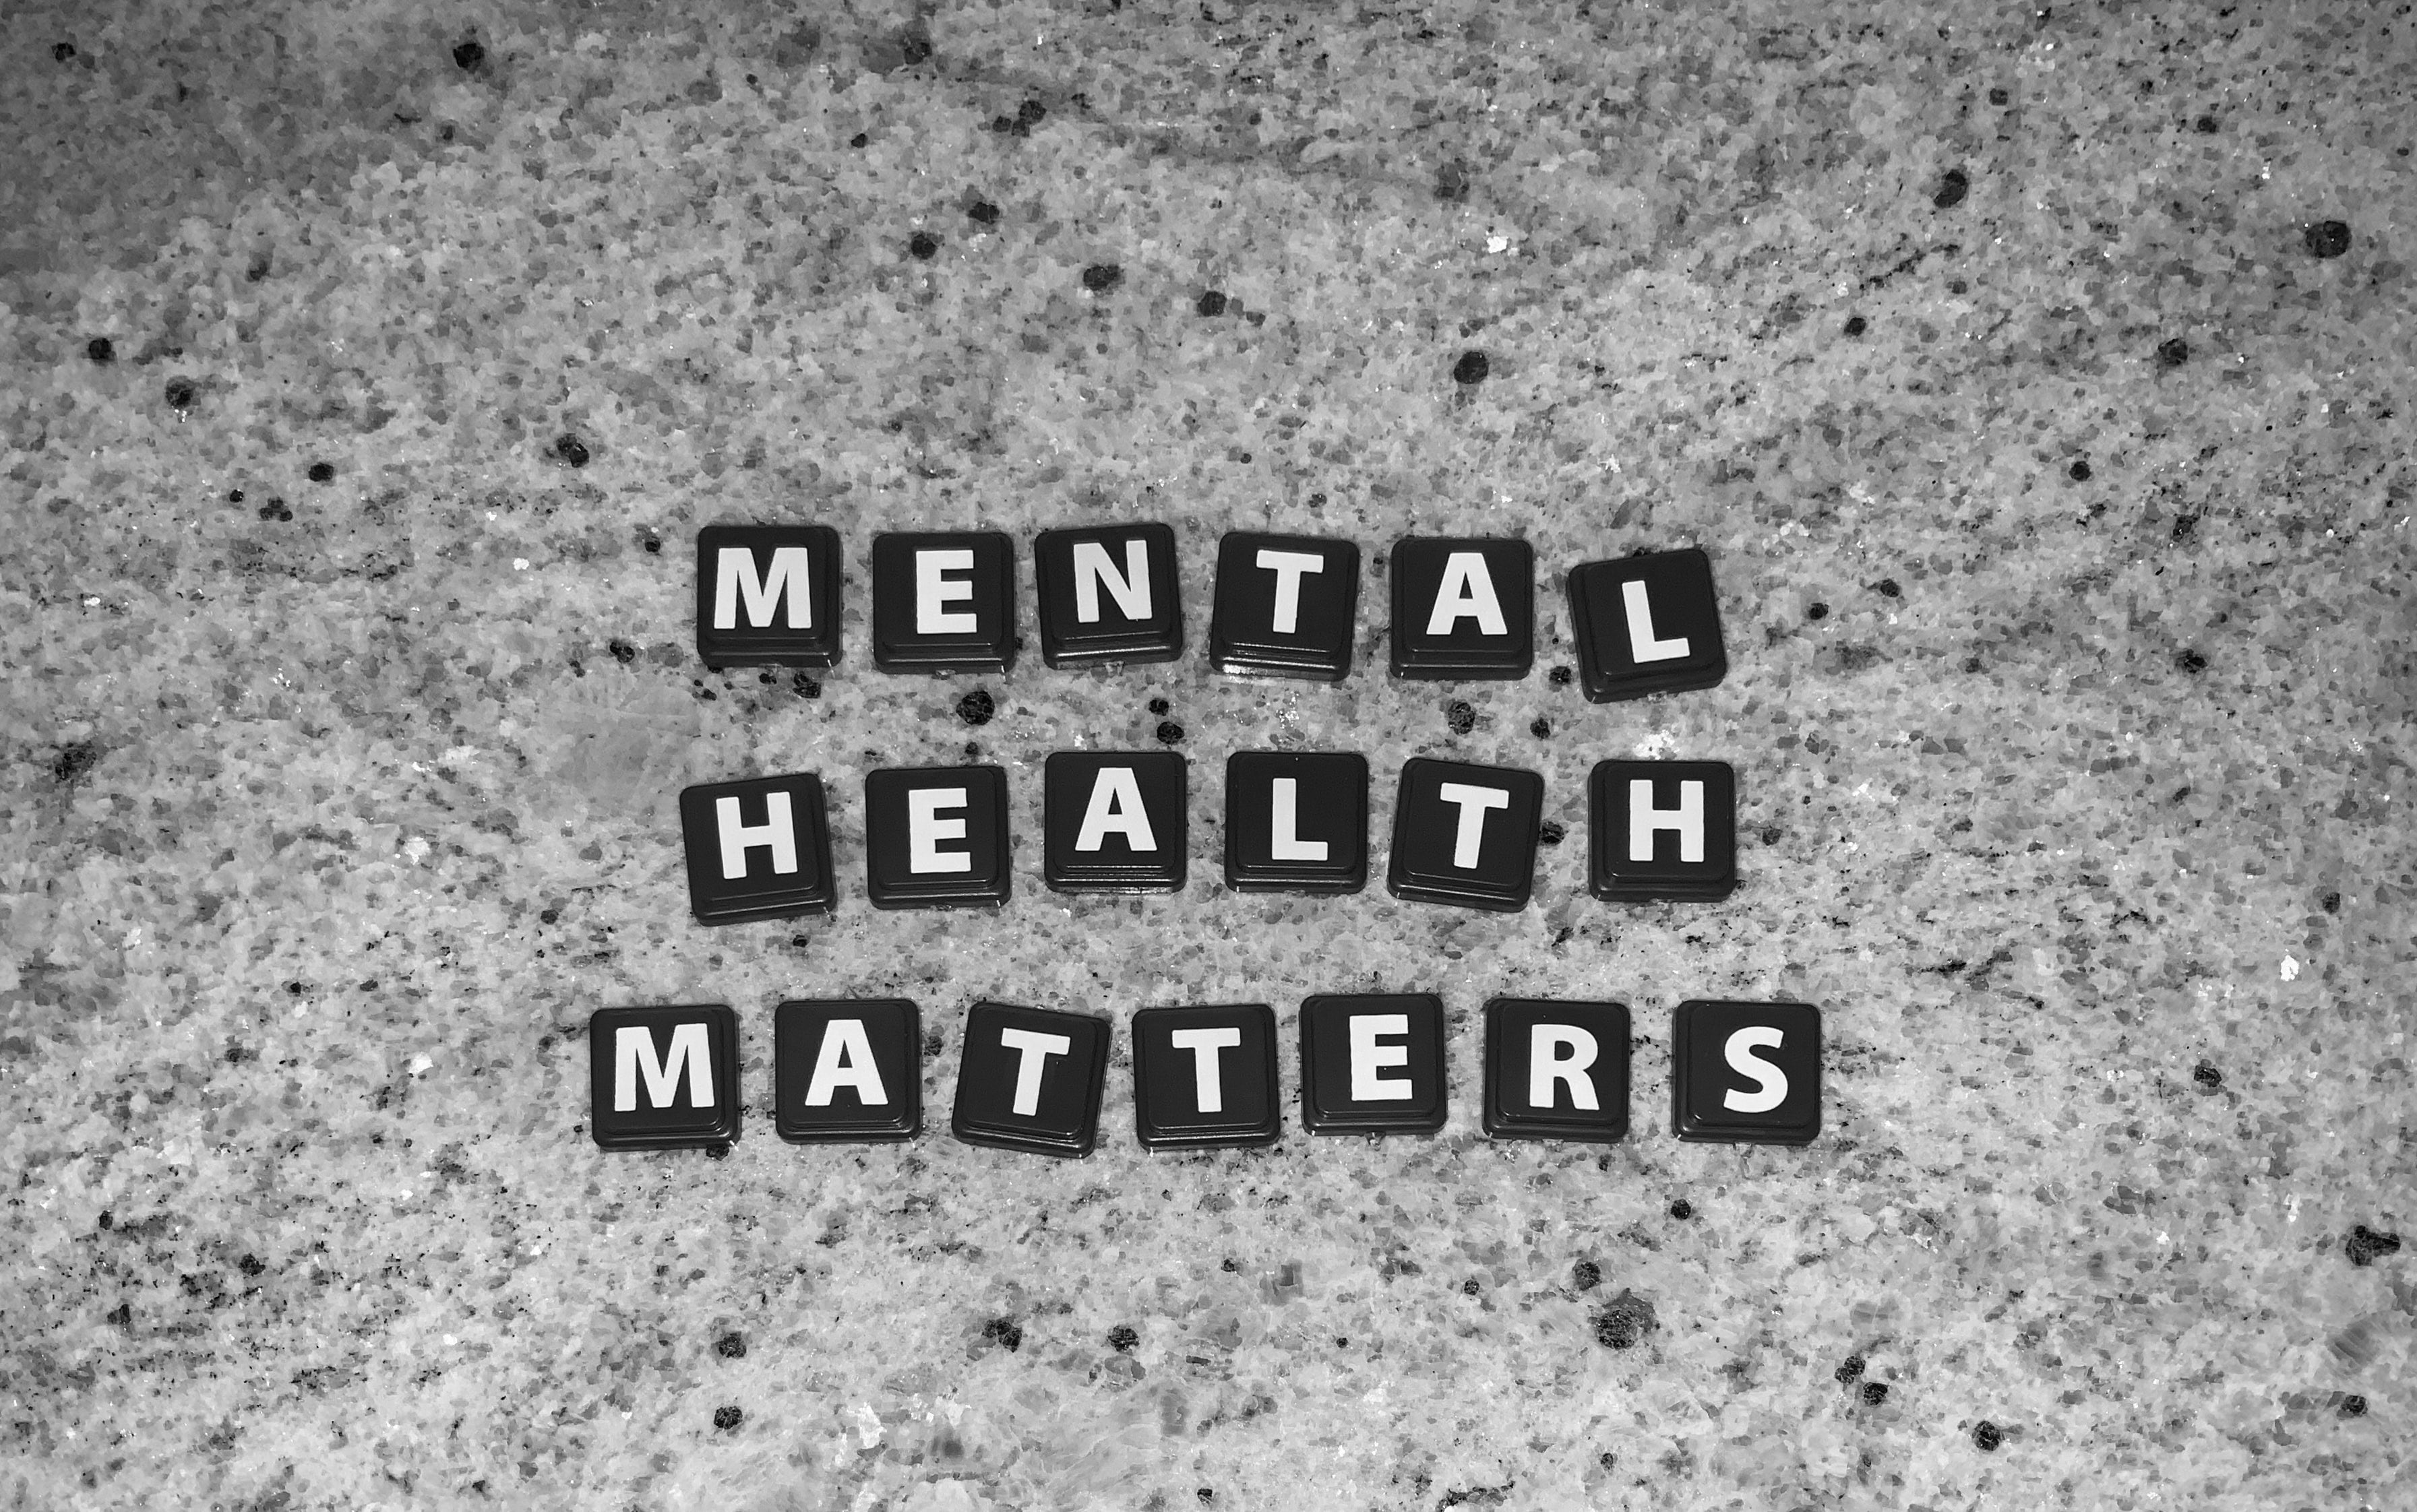 """Letter tiles spell out """"Mental Health Matters"""""""